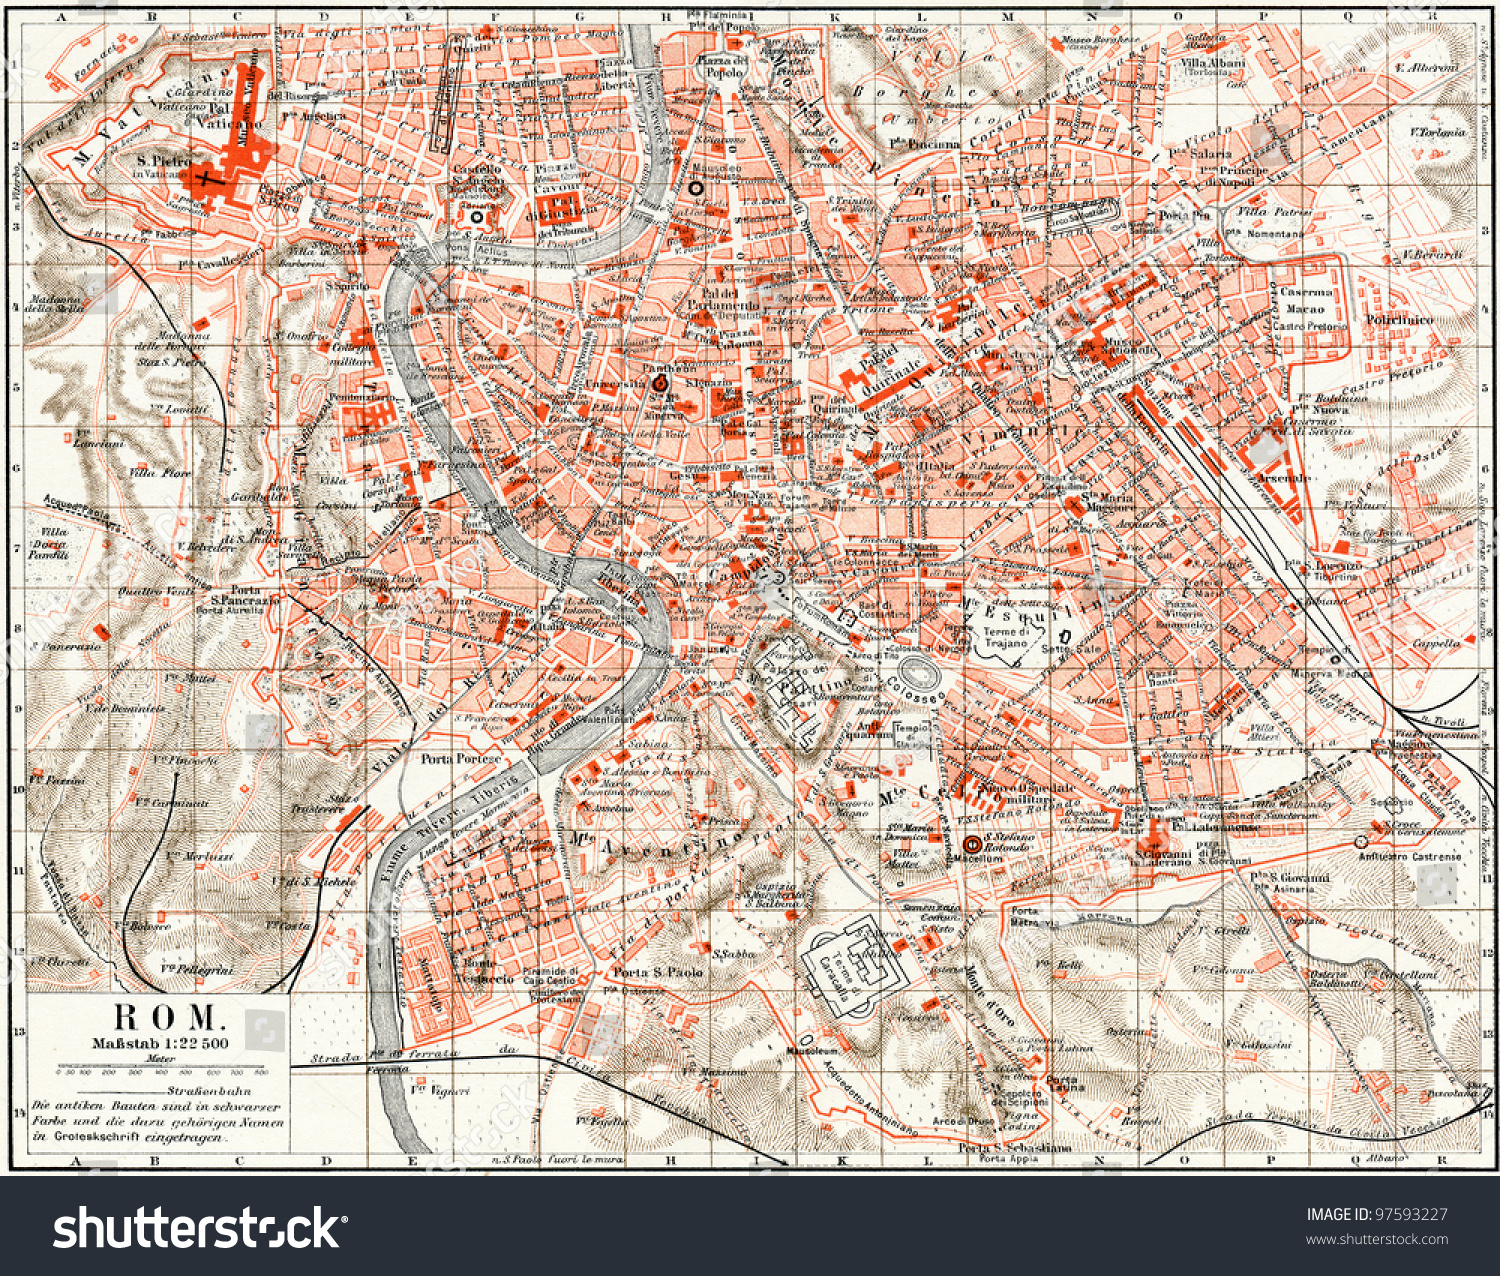 Map rome publication book meyers konversationslexikon stock map rome publication book meyers konversationslexikon stock illustration 97593227 shutterstock gumiabroncs Image collections